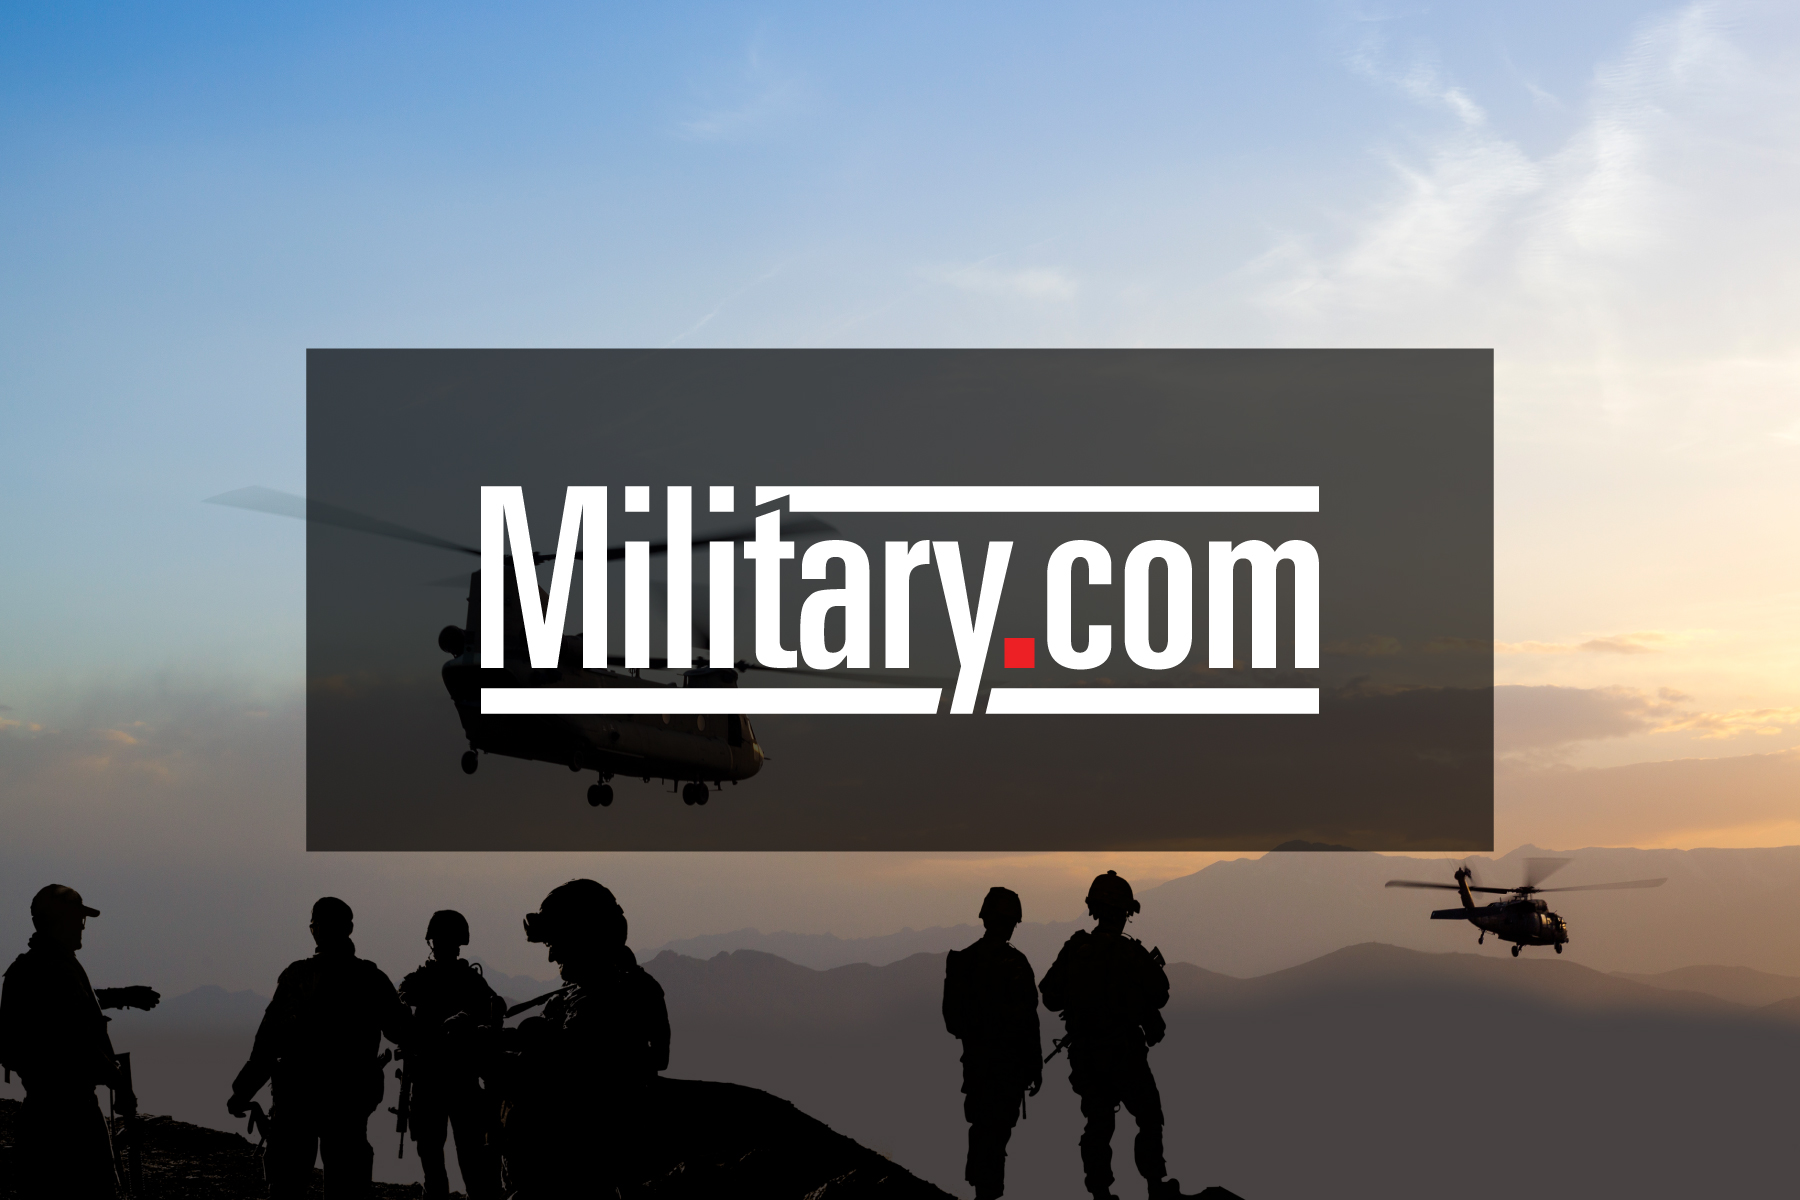 Taliban with weapons